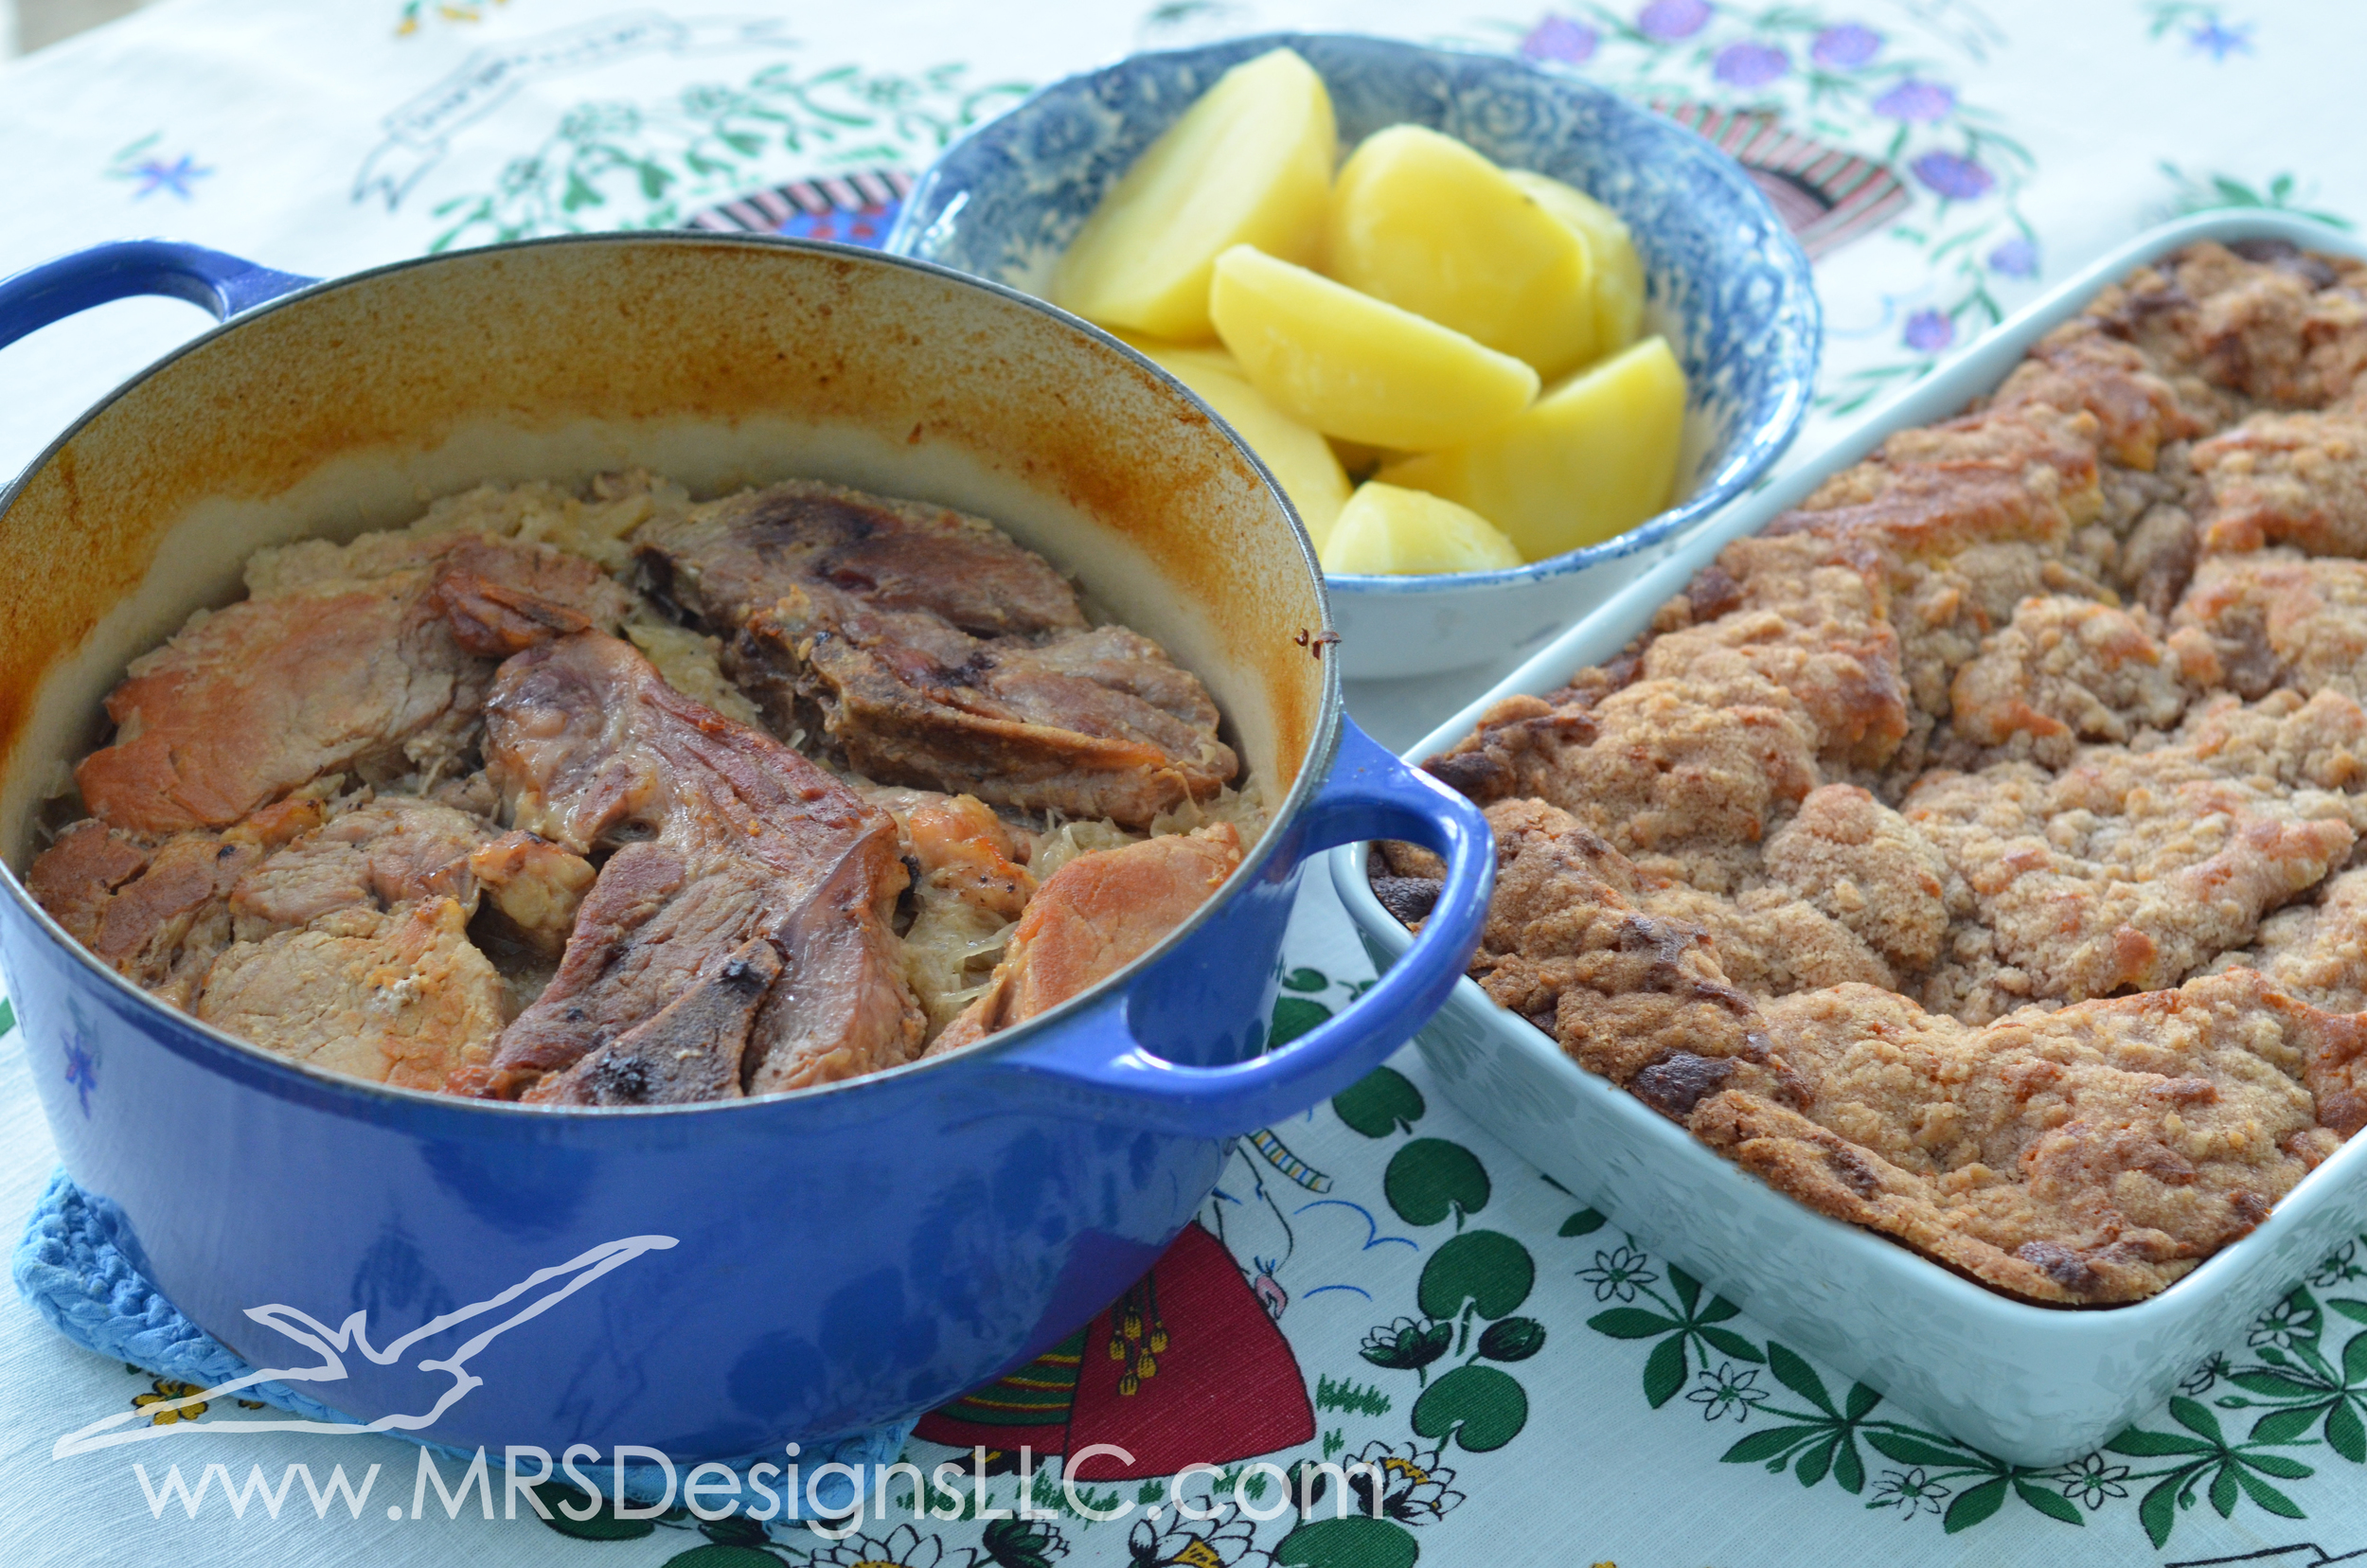 MRS Designs Blog - Sauerkraut with ribs dinner served with yukon potatoes and plum buckle for dessert